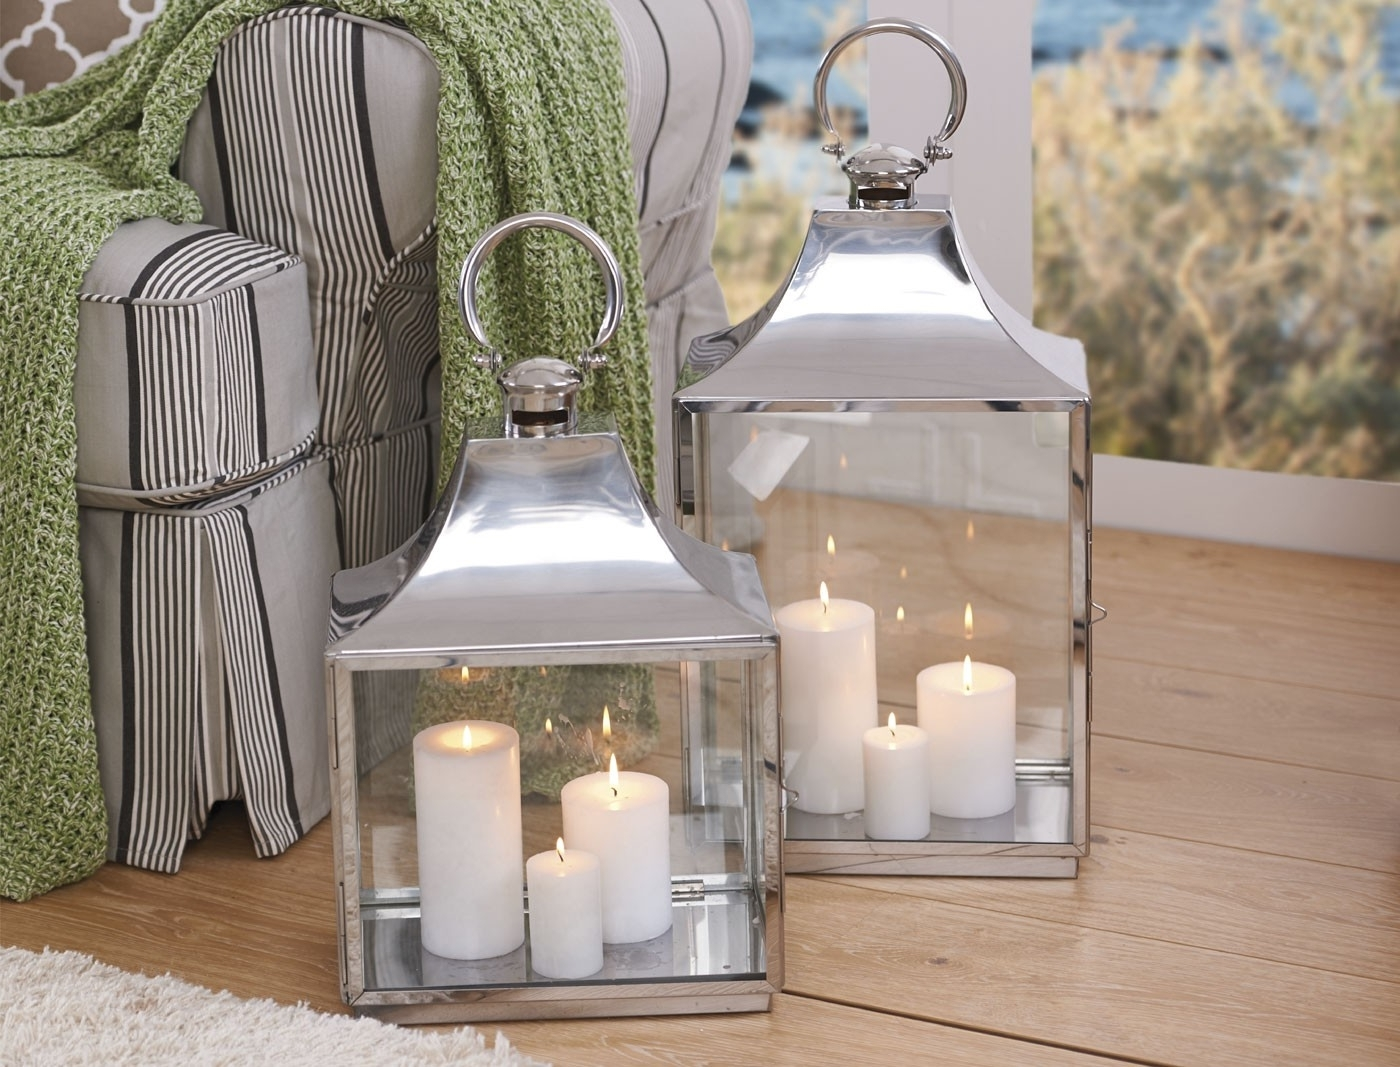 Household Pillar Candles – Ivory Inside Fashionable Outdoor Lanterns And Votives (View 7 of 20)